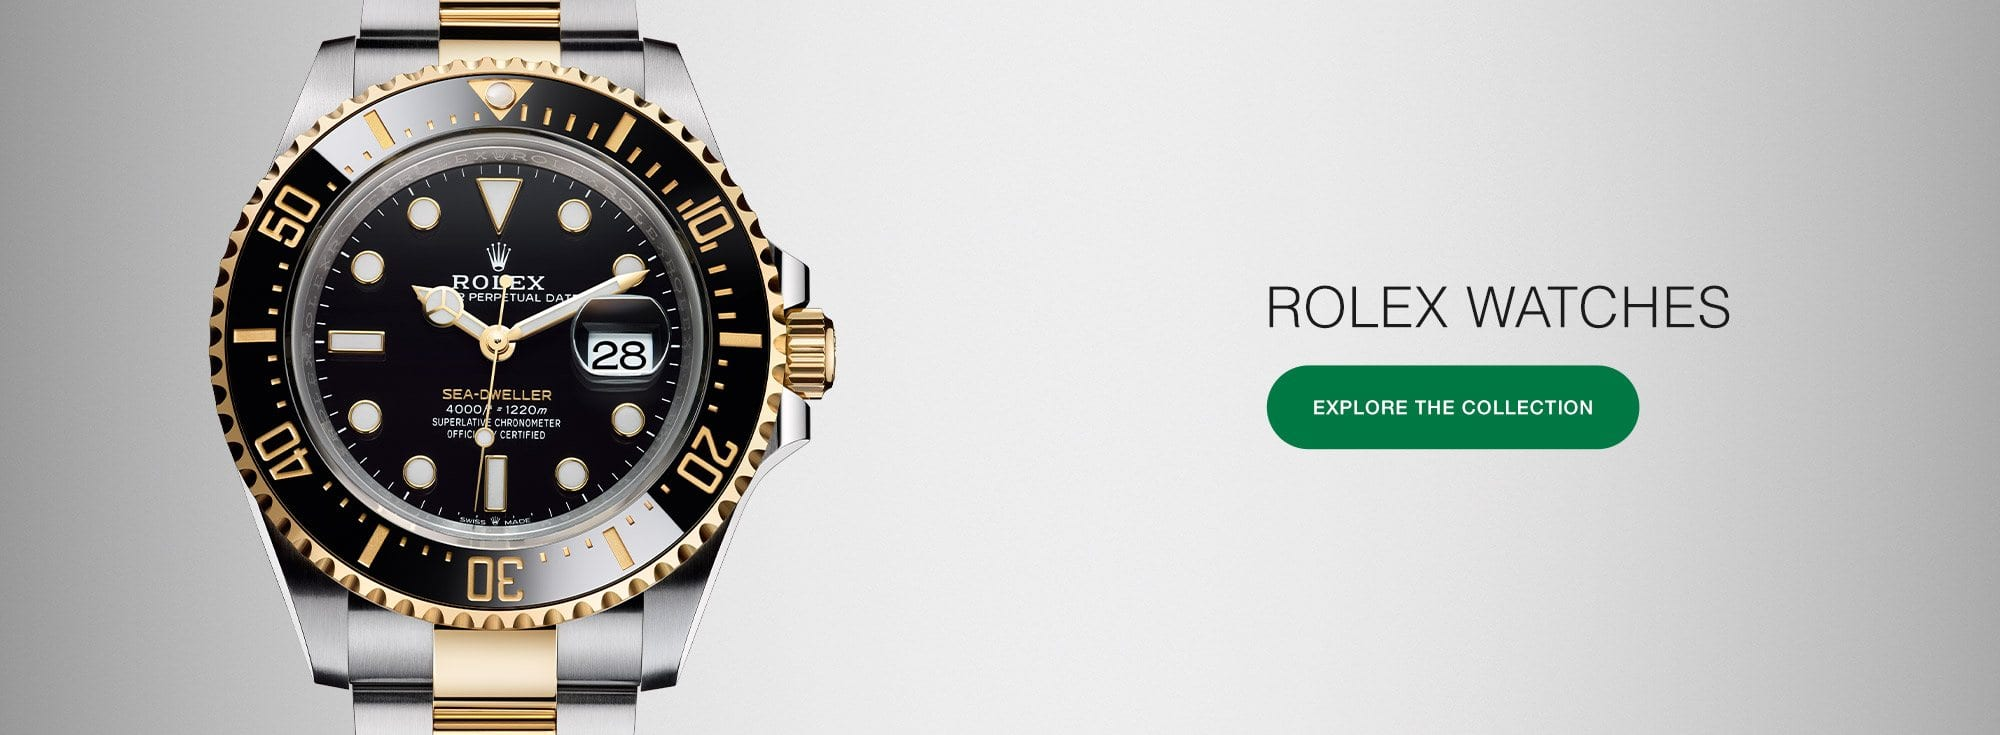 Rolex Watches. Explore the collection.